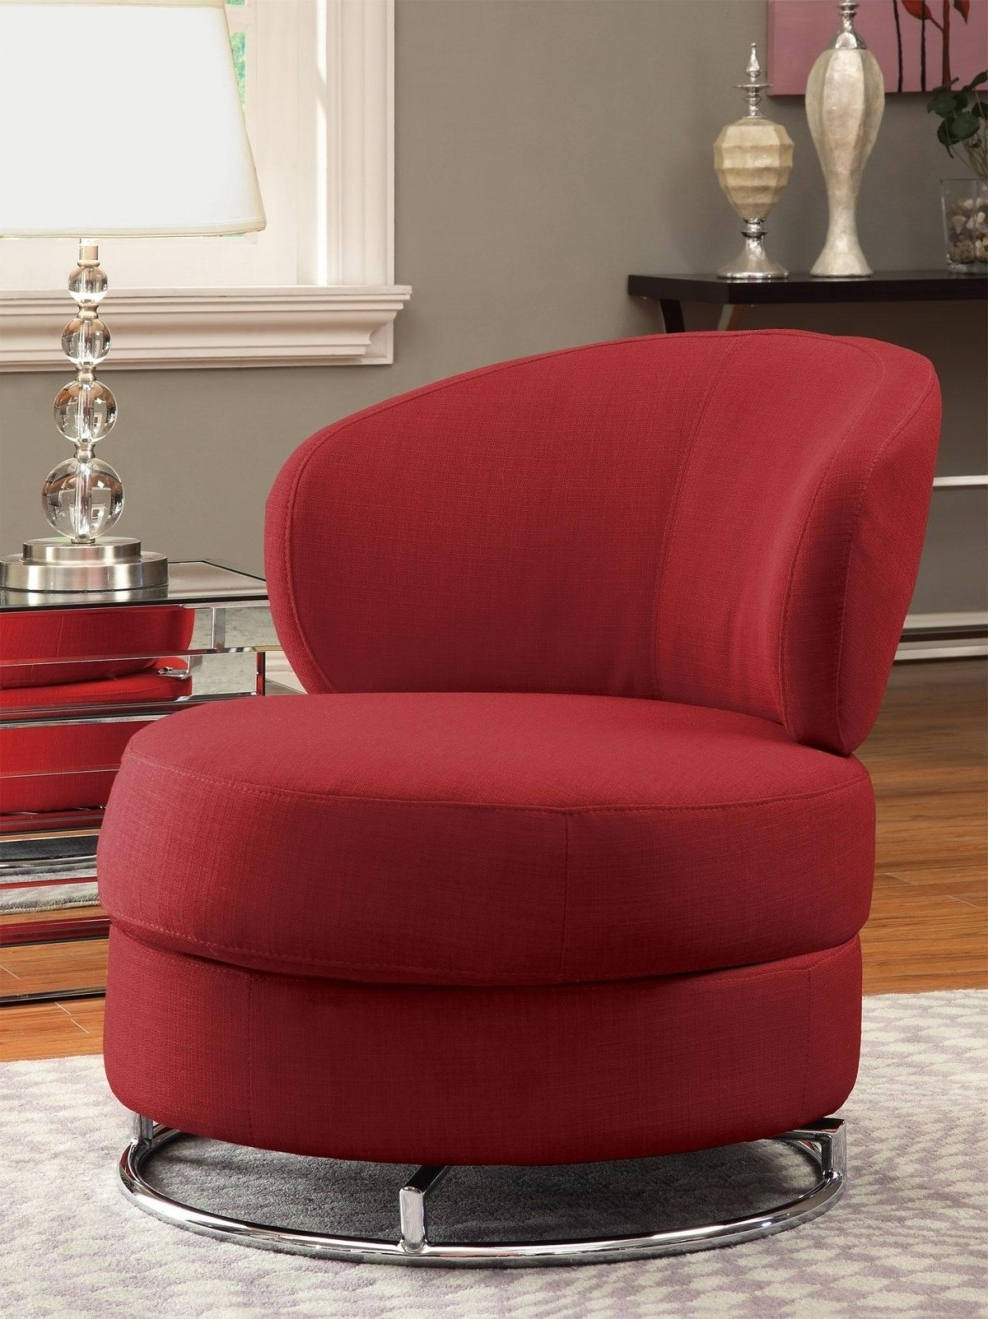 2018 Round Swivel Sofa Chairs Inside Sofa : Excellent Round Sofa Chair Living Room Furniture Harveys (View 11 of 20)